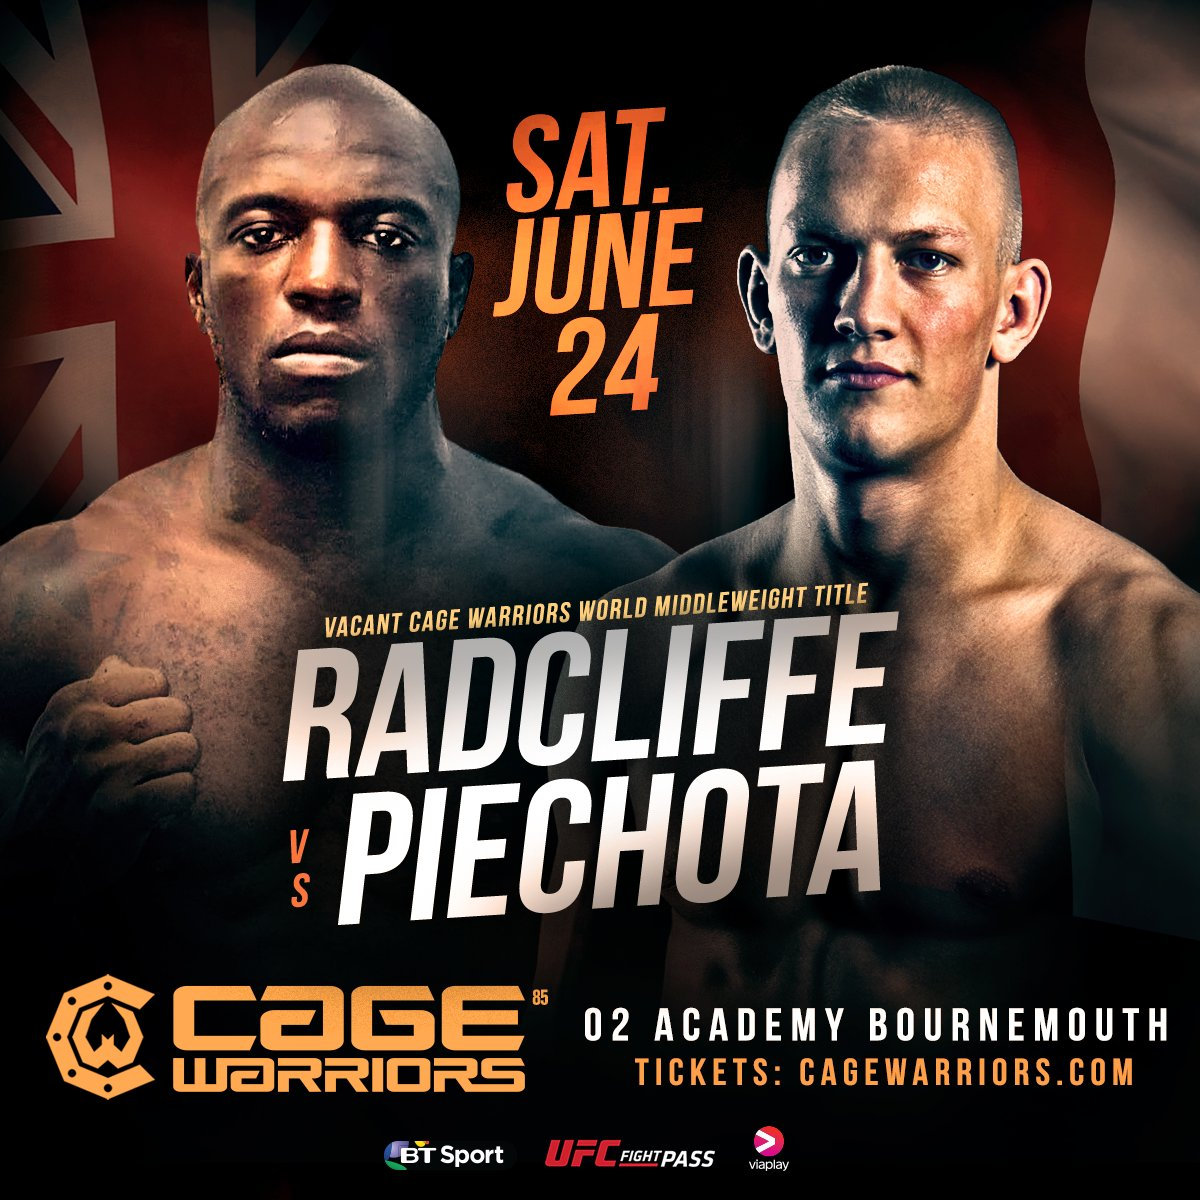 ONE HOUR! #CW85 is LIVE on #UFCFIGHTPASS! @CageWarriors https://t.co/v...